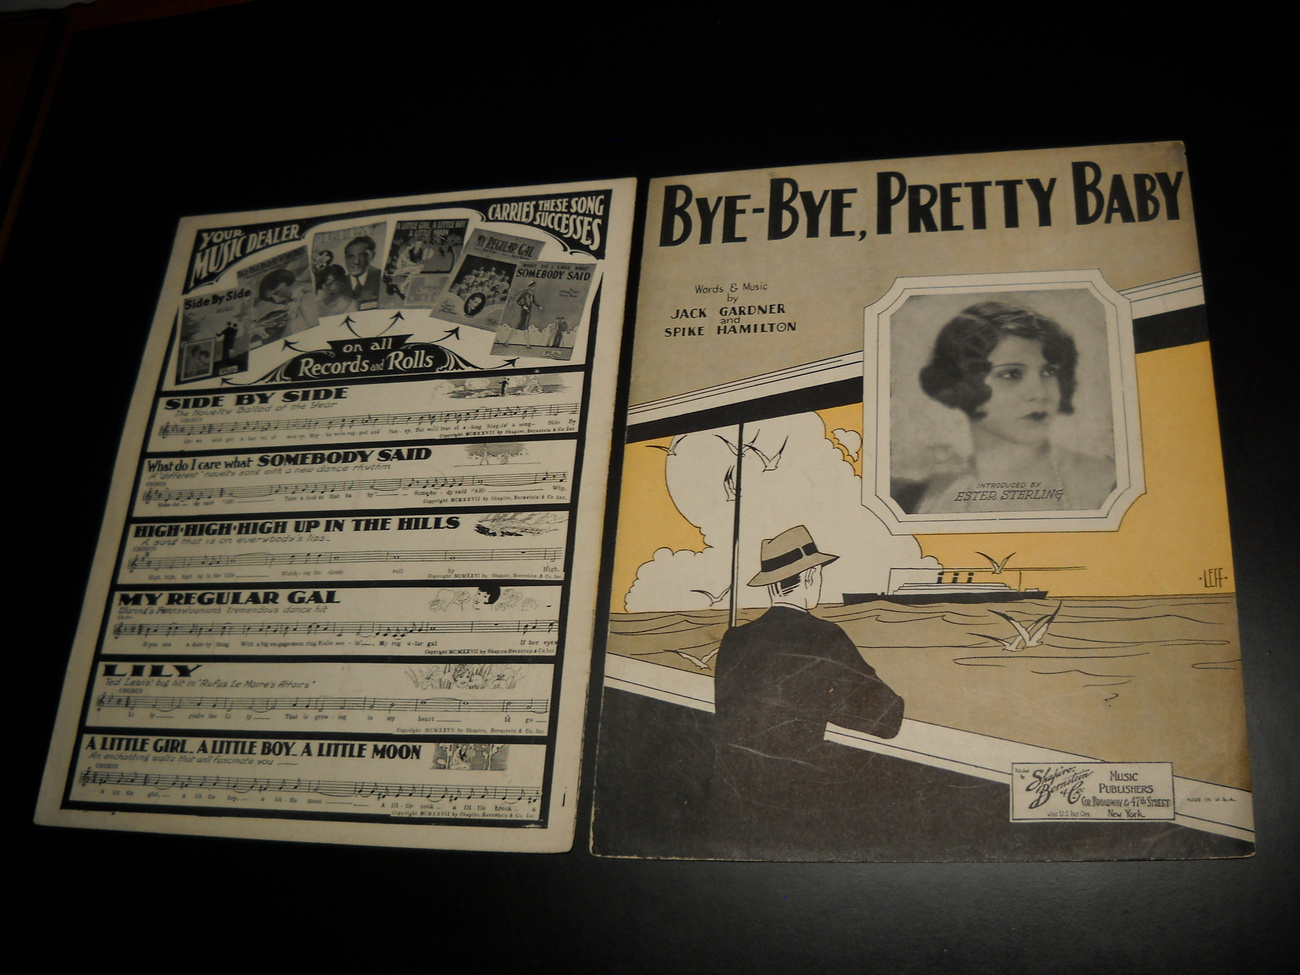 Sheet_music_bye_bye_pretty_baby_ester_sterling_1927_shapiro_04